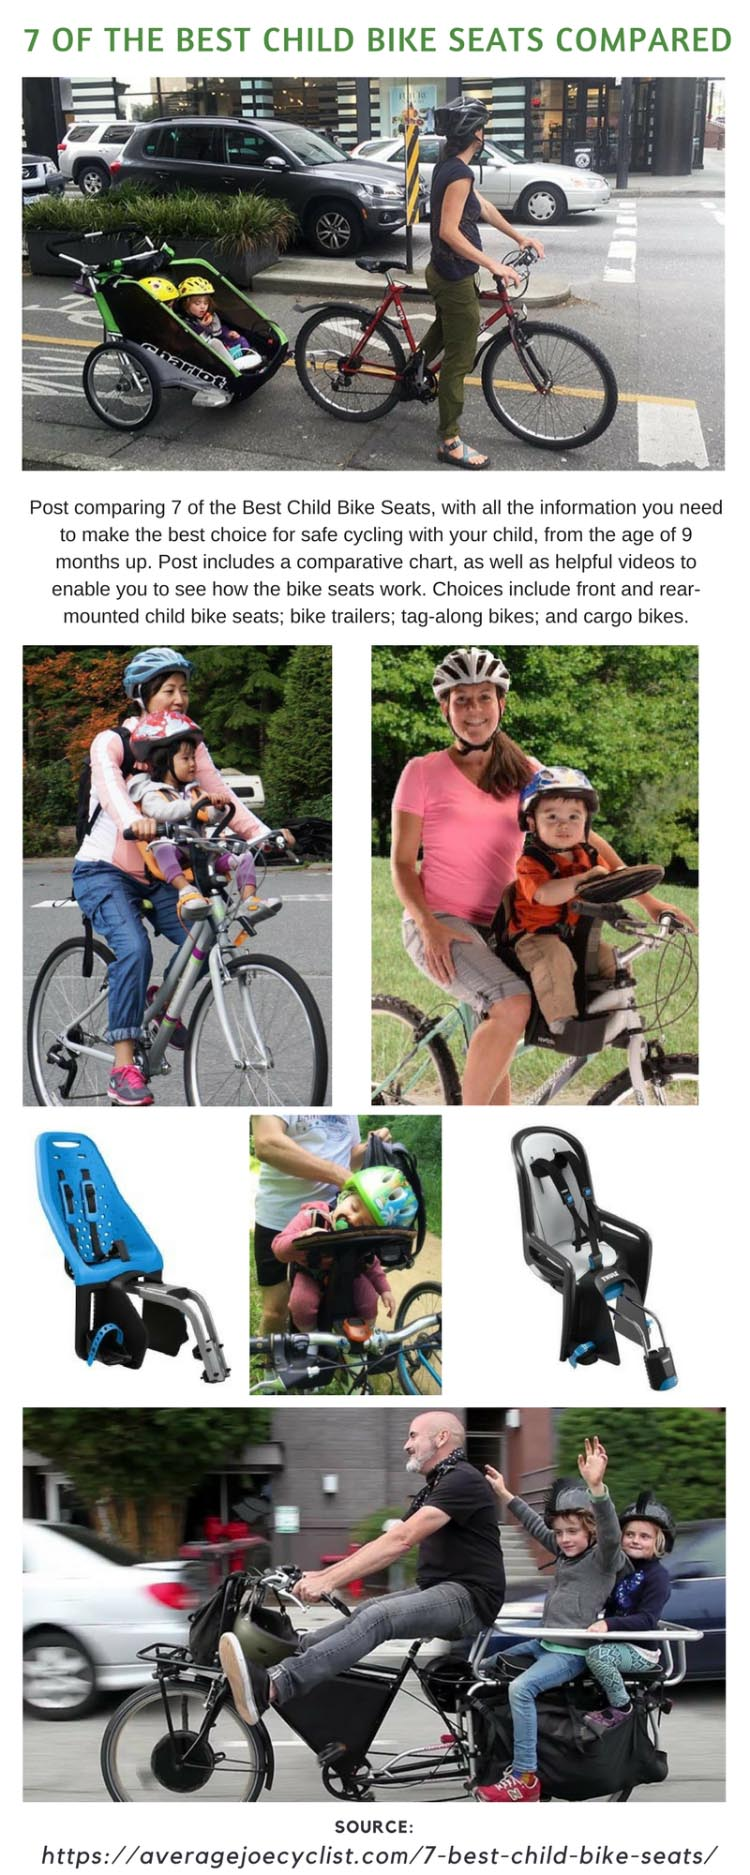 Child Bike Seat Front Mount Bicycle Safety Baby Carrier Toddler Back Padding New